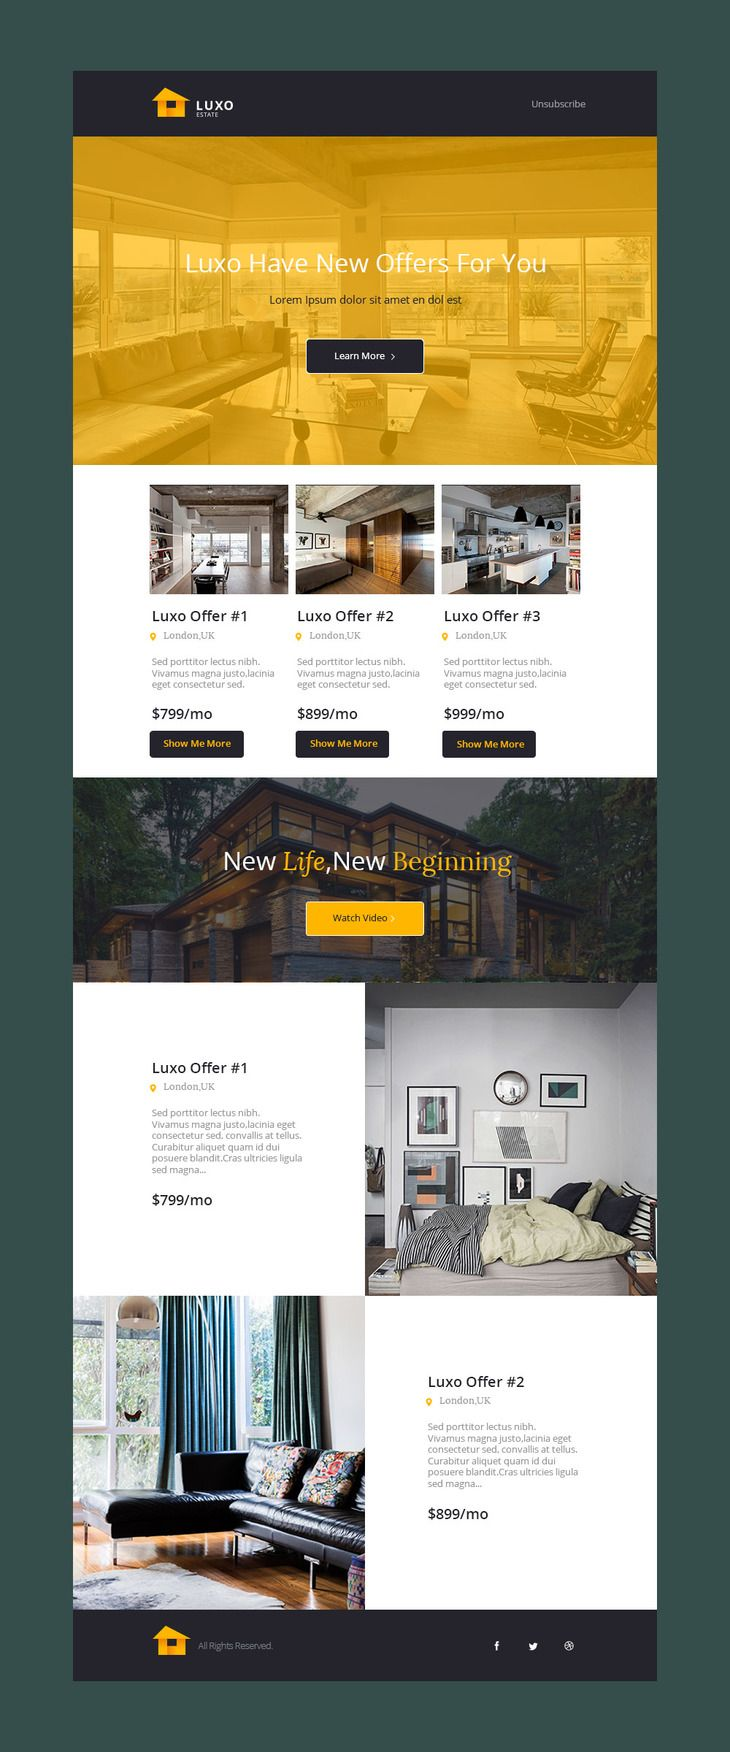 Luxo Free PSD Email Template Preview Web Design Pinterest - Edm template